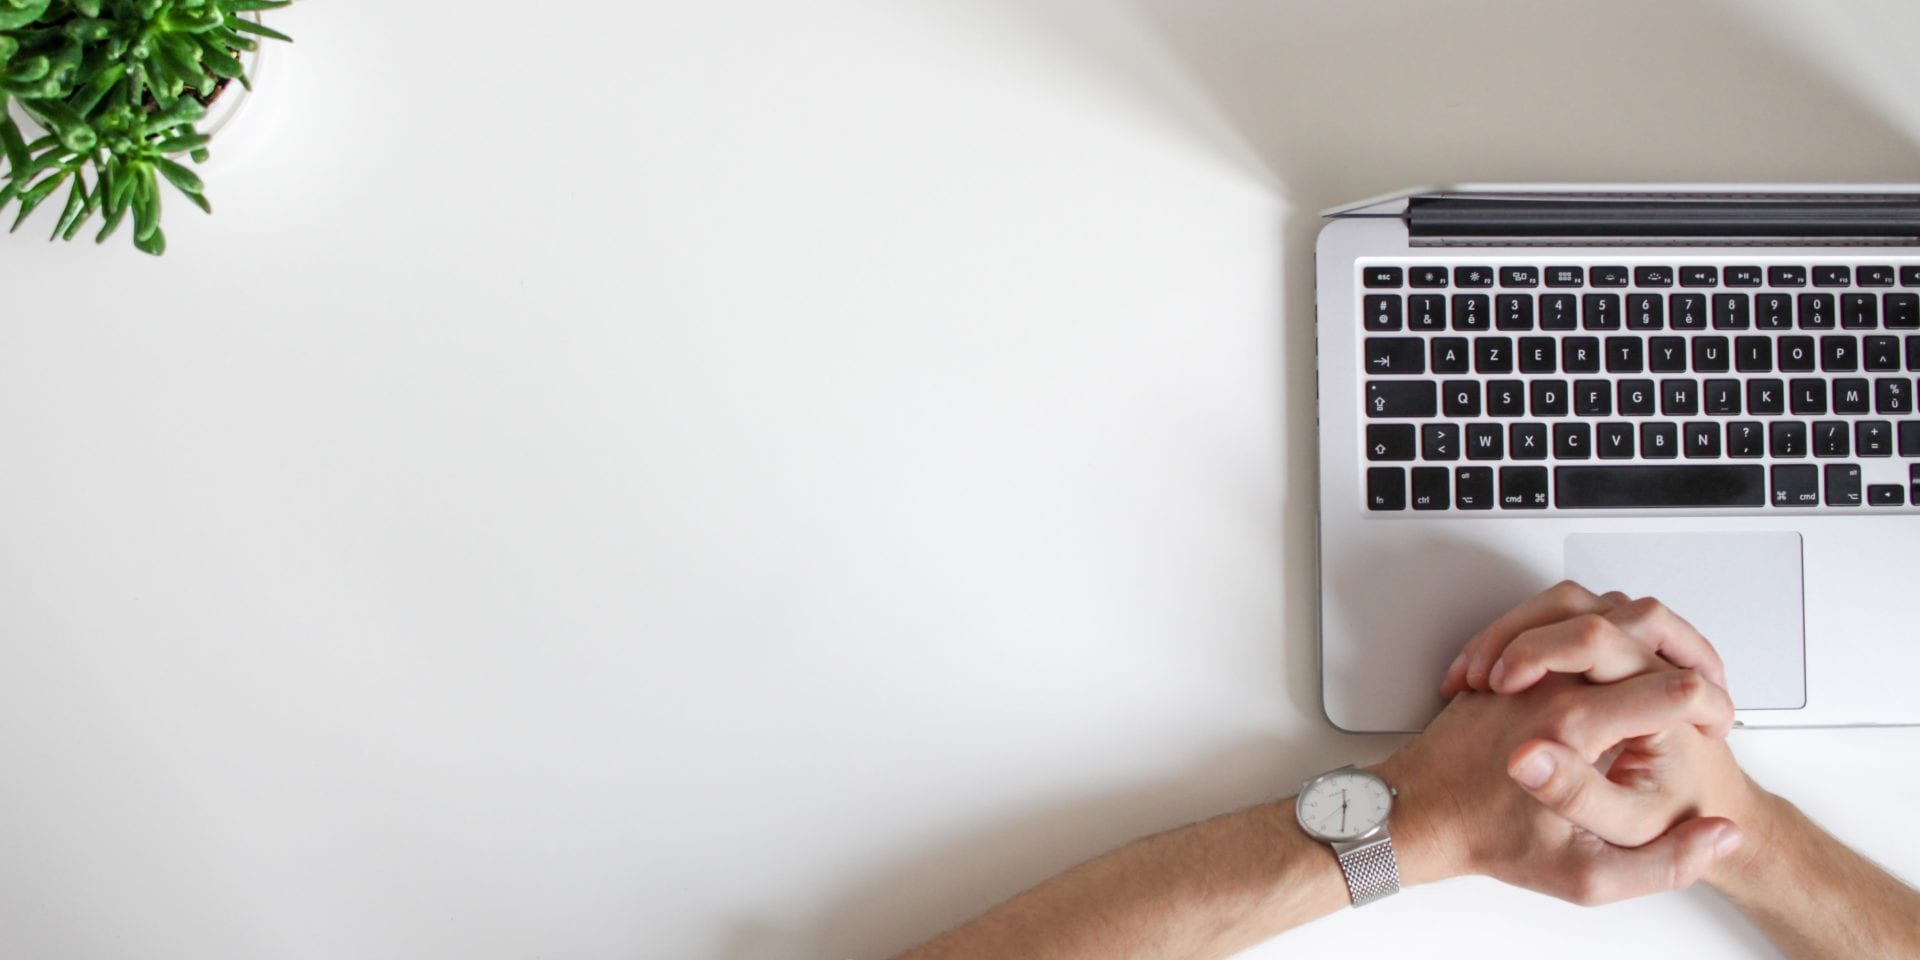 Top five video interview tips: Hands clasped together on top of open laptop